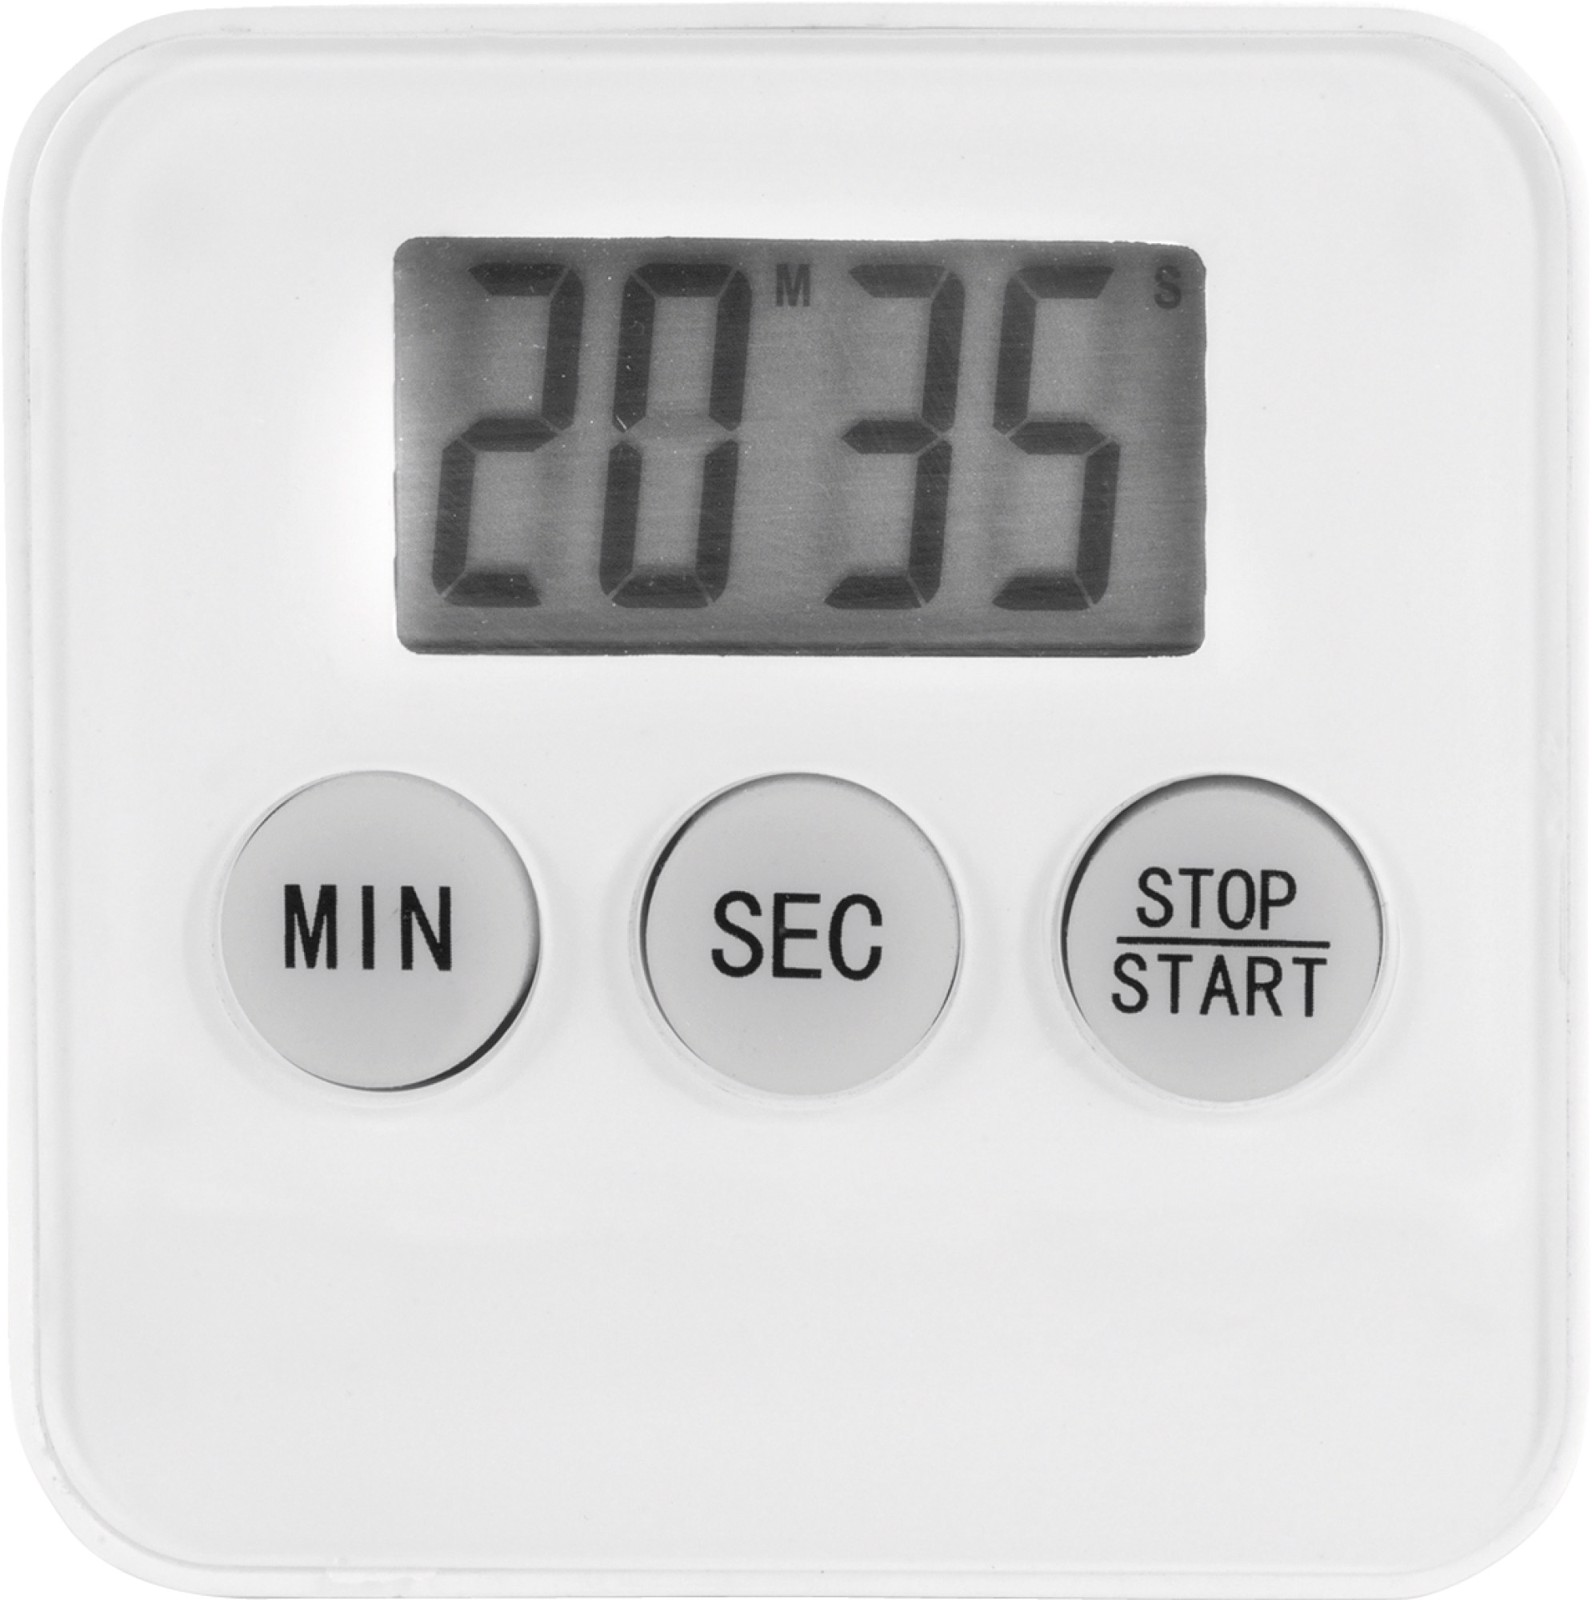 ABS cooking timer